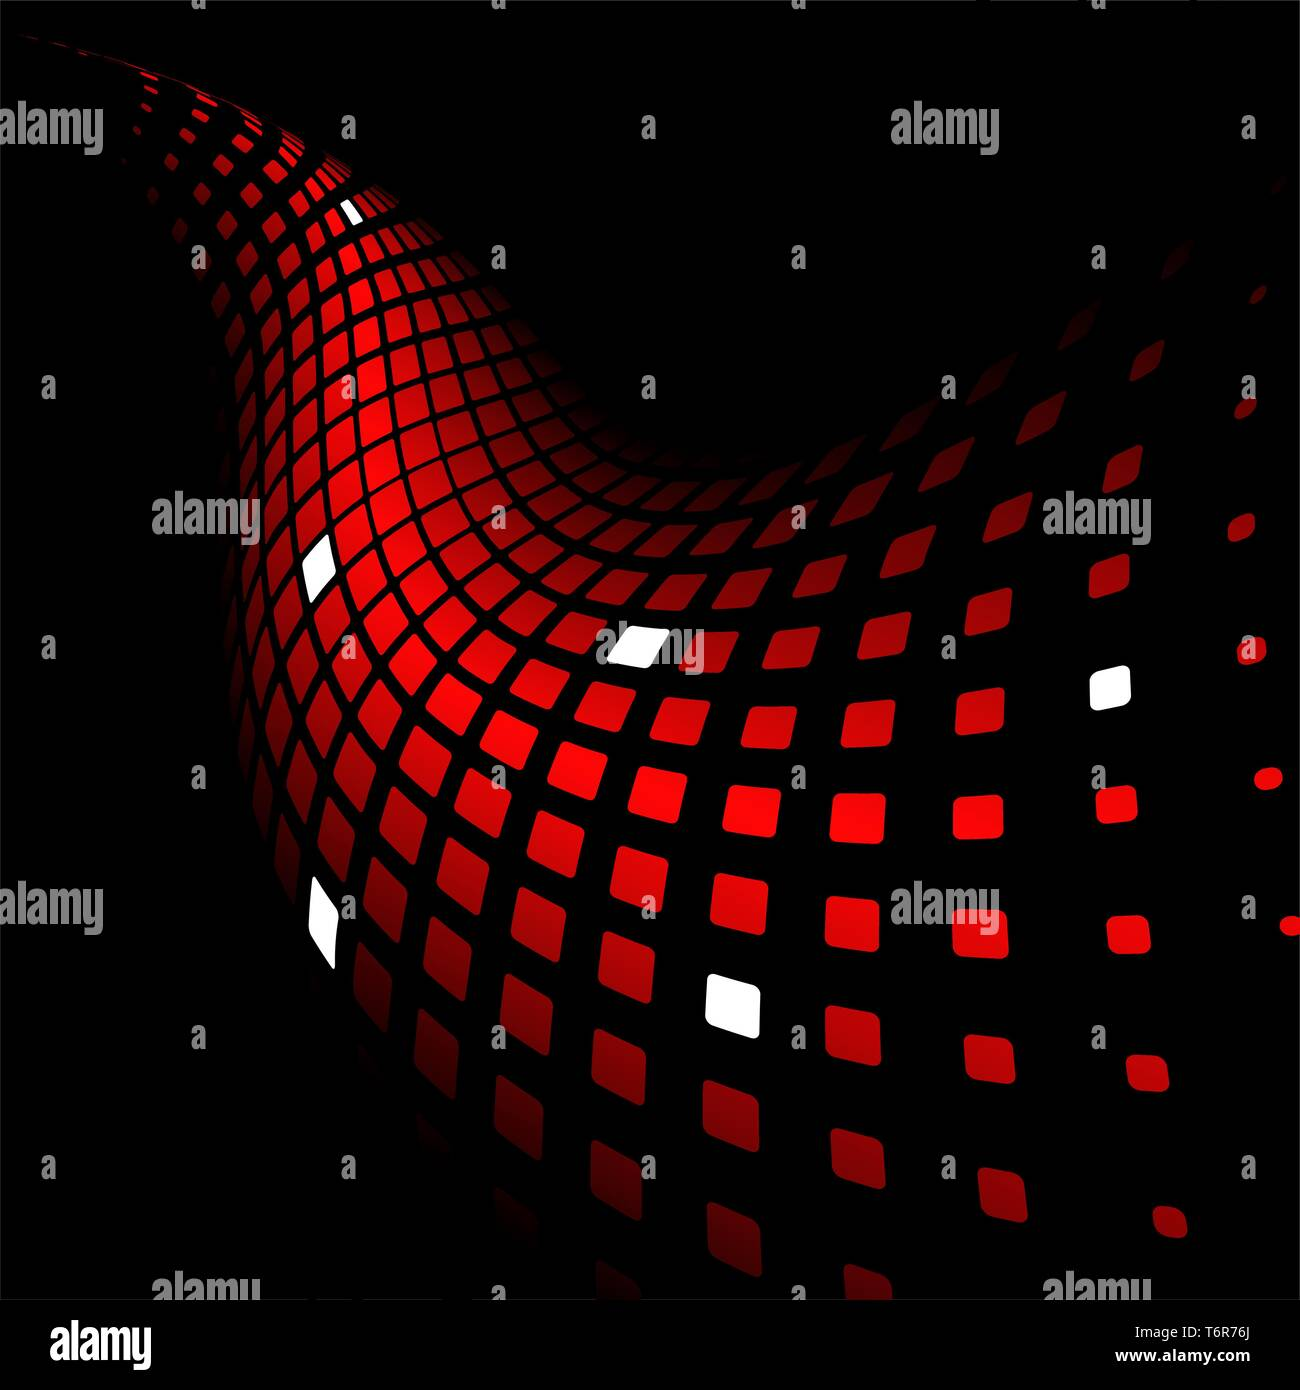 3d Abstract Dynamic Red Background On Black Stock Vector Image Art Alamy